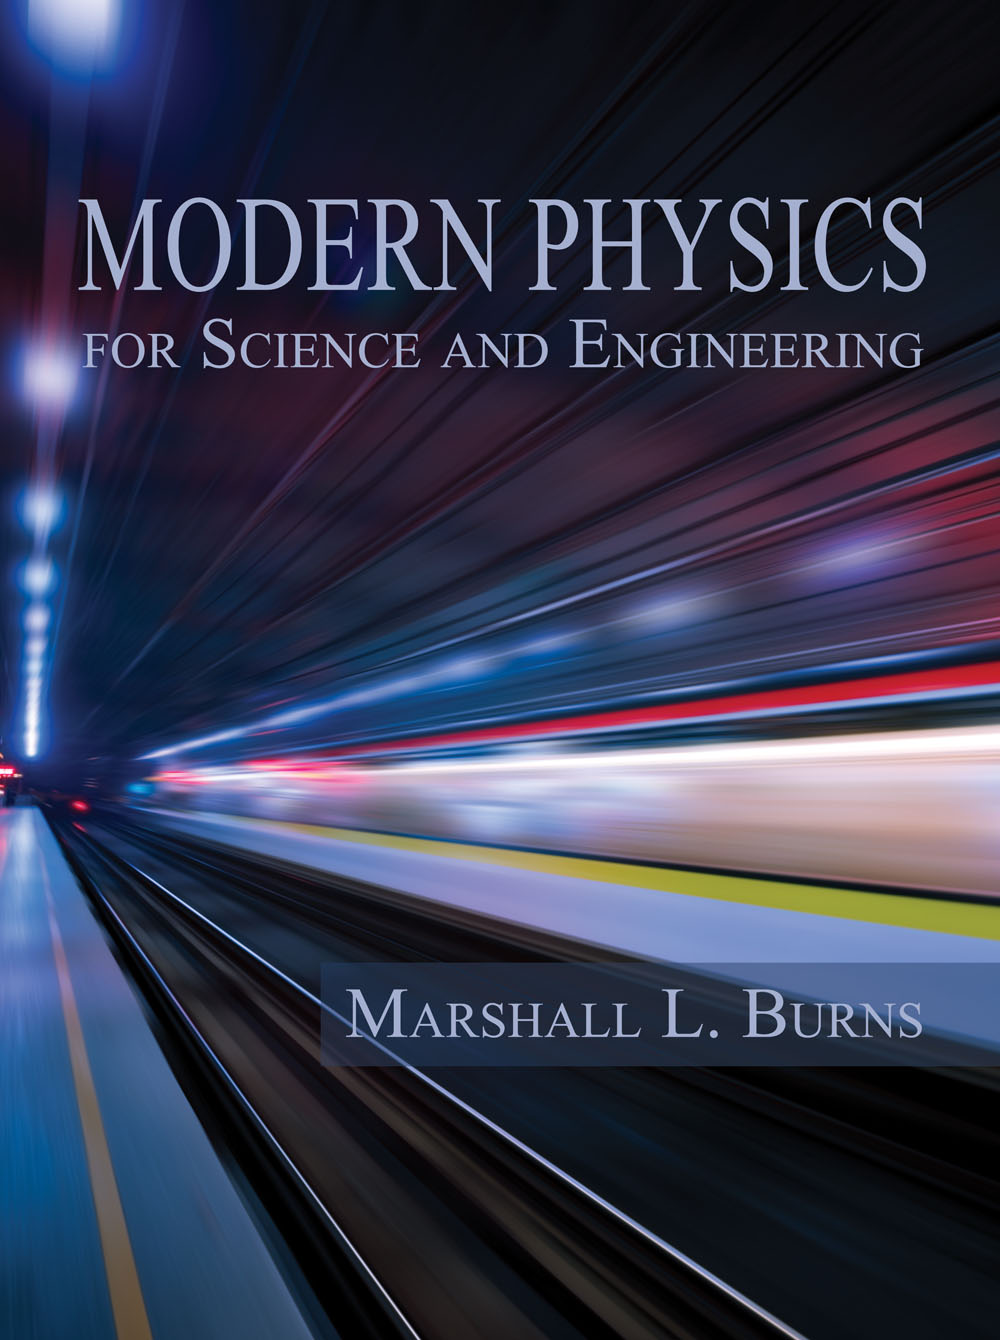 physics curriculum  u0026 instruction  u2014 modern physics for science and engineering